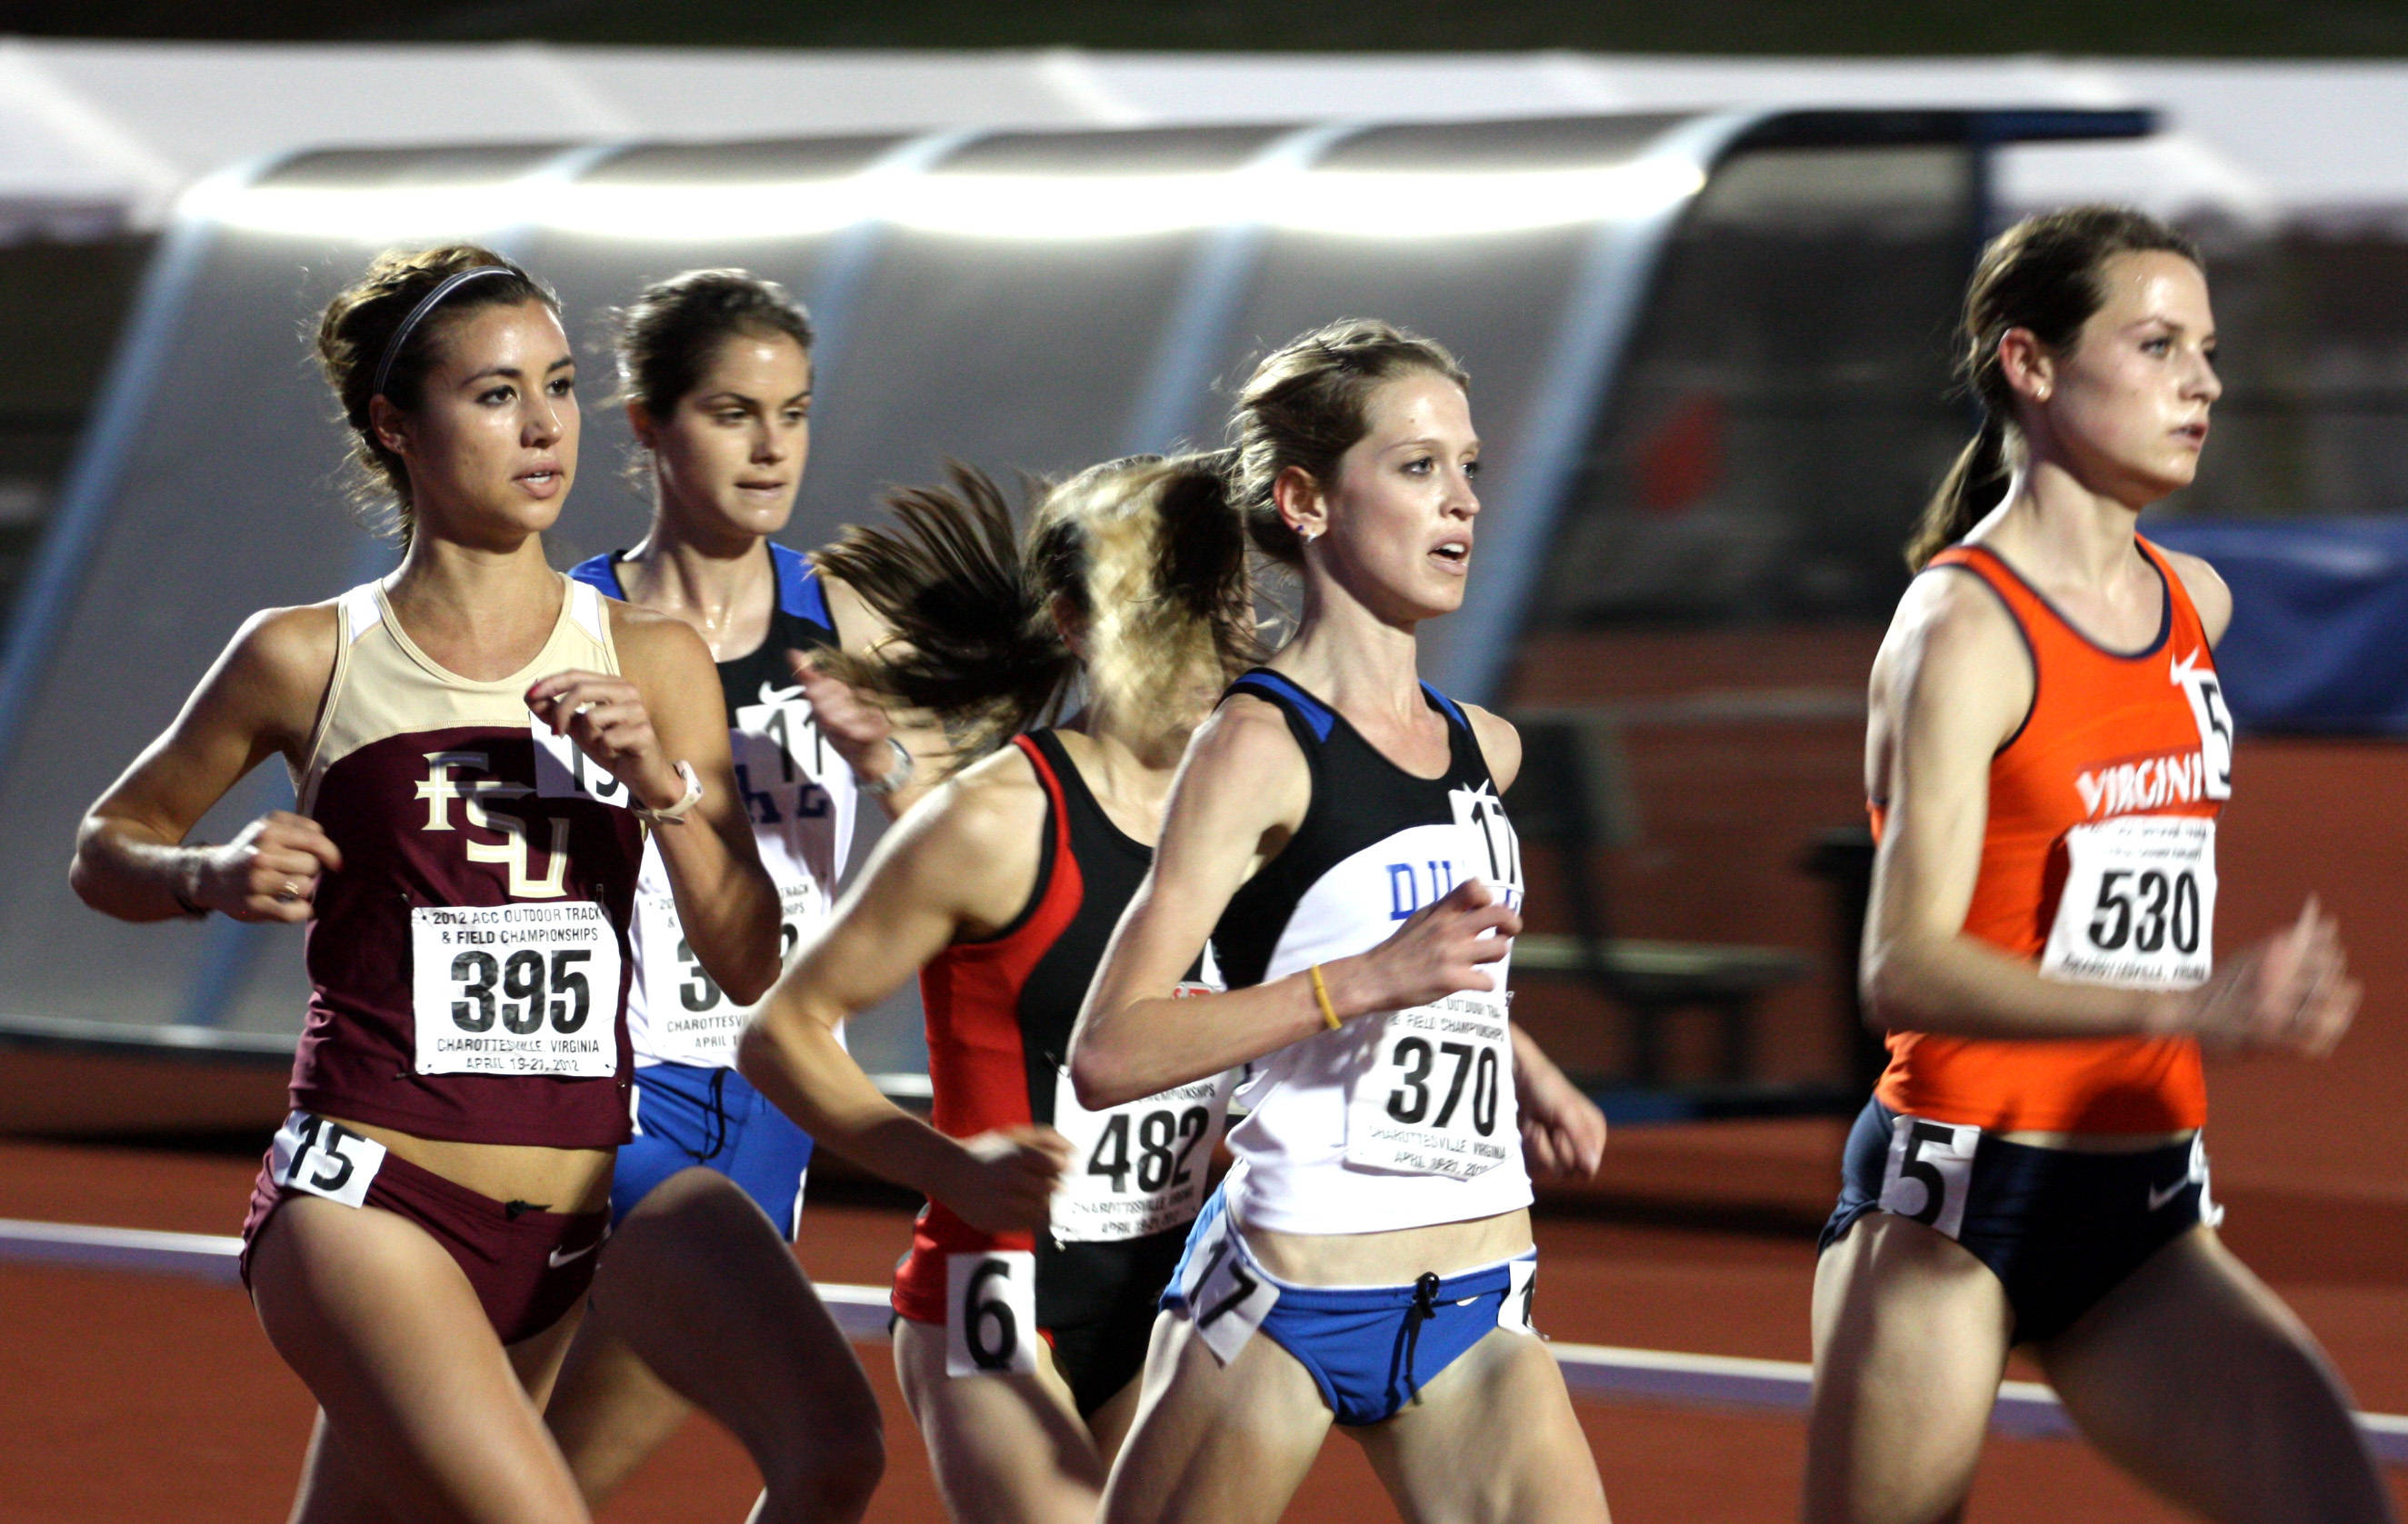 Kayleigh Tyerman settles into the front pack in the 10,000-meter run at the ACC Championships, where she finished fifth.